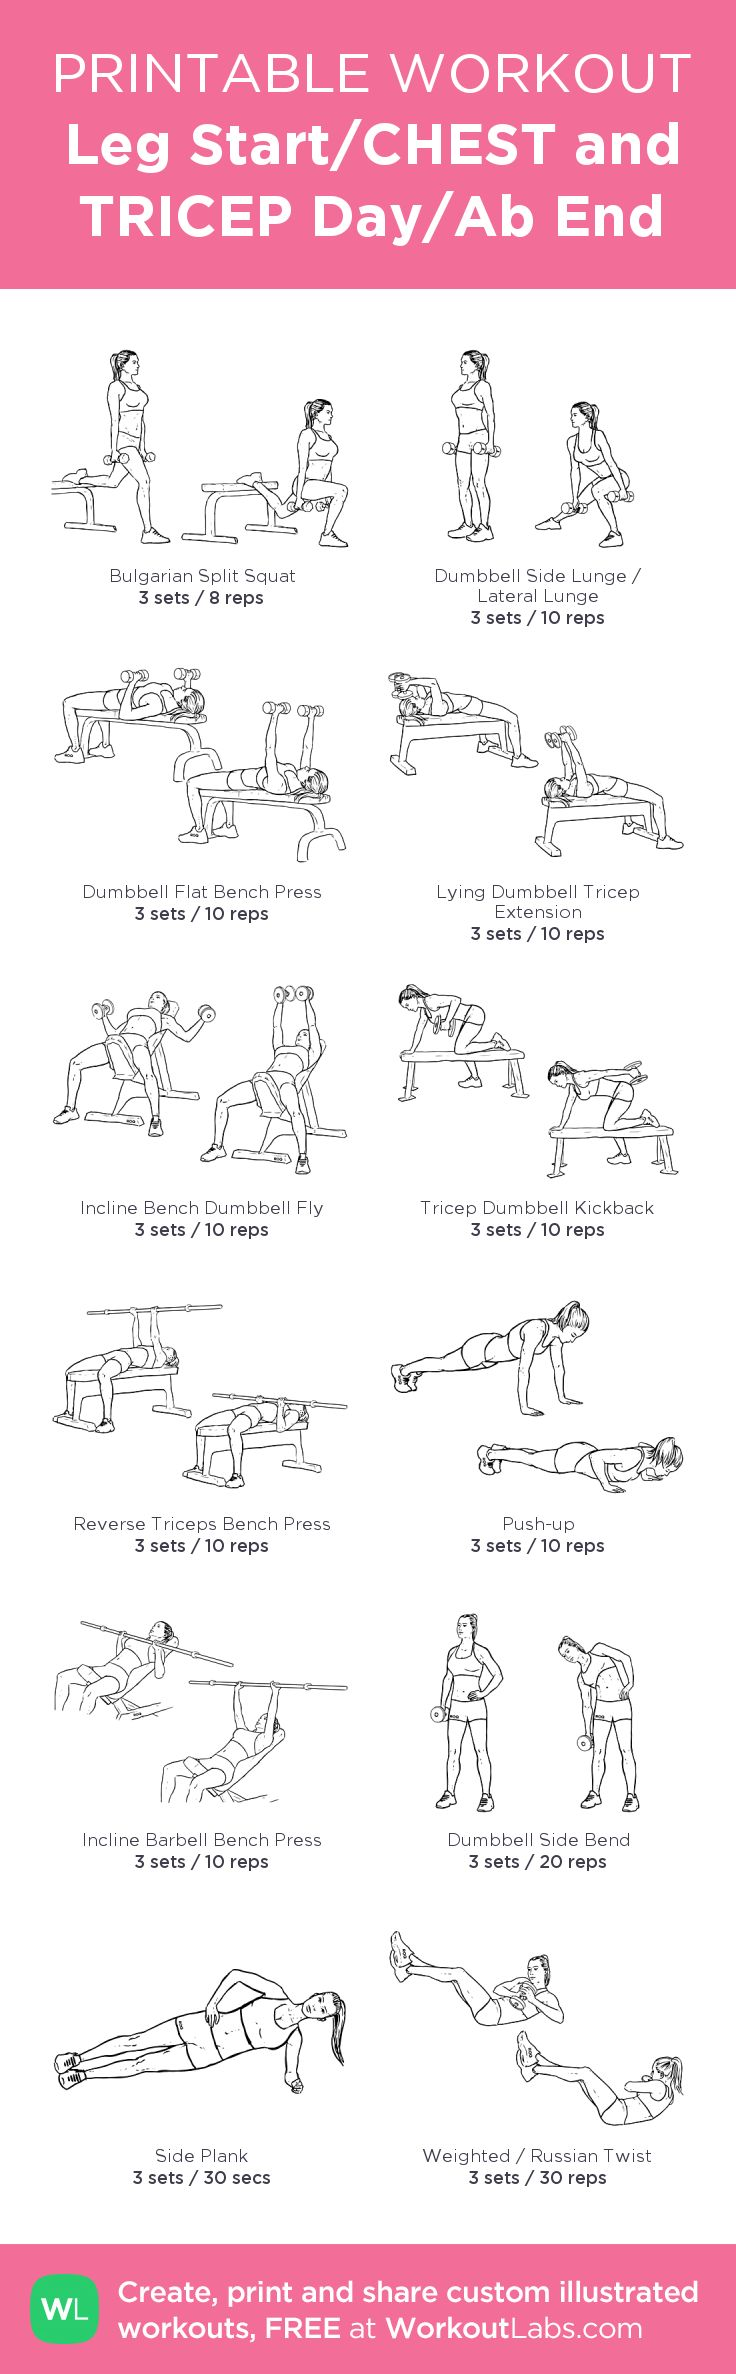 Leg Start/CHEST and TRICEP Day/Ab End:my visual workout created at WorkoutLabs.com • Click through to customize and download as a FREE PDF! #customworkout